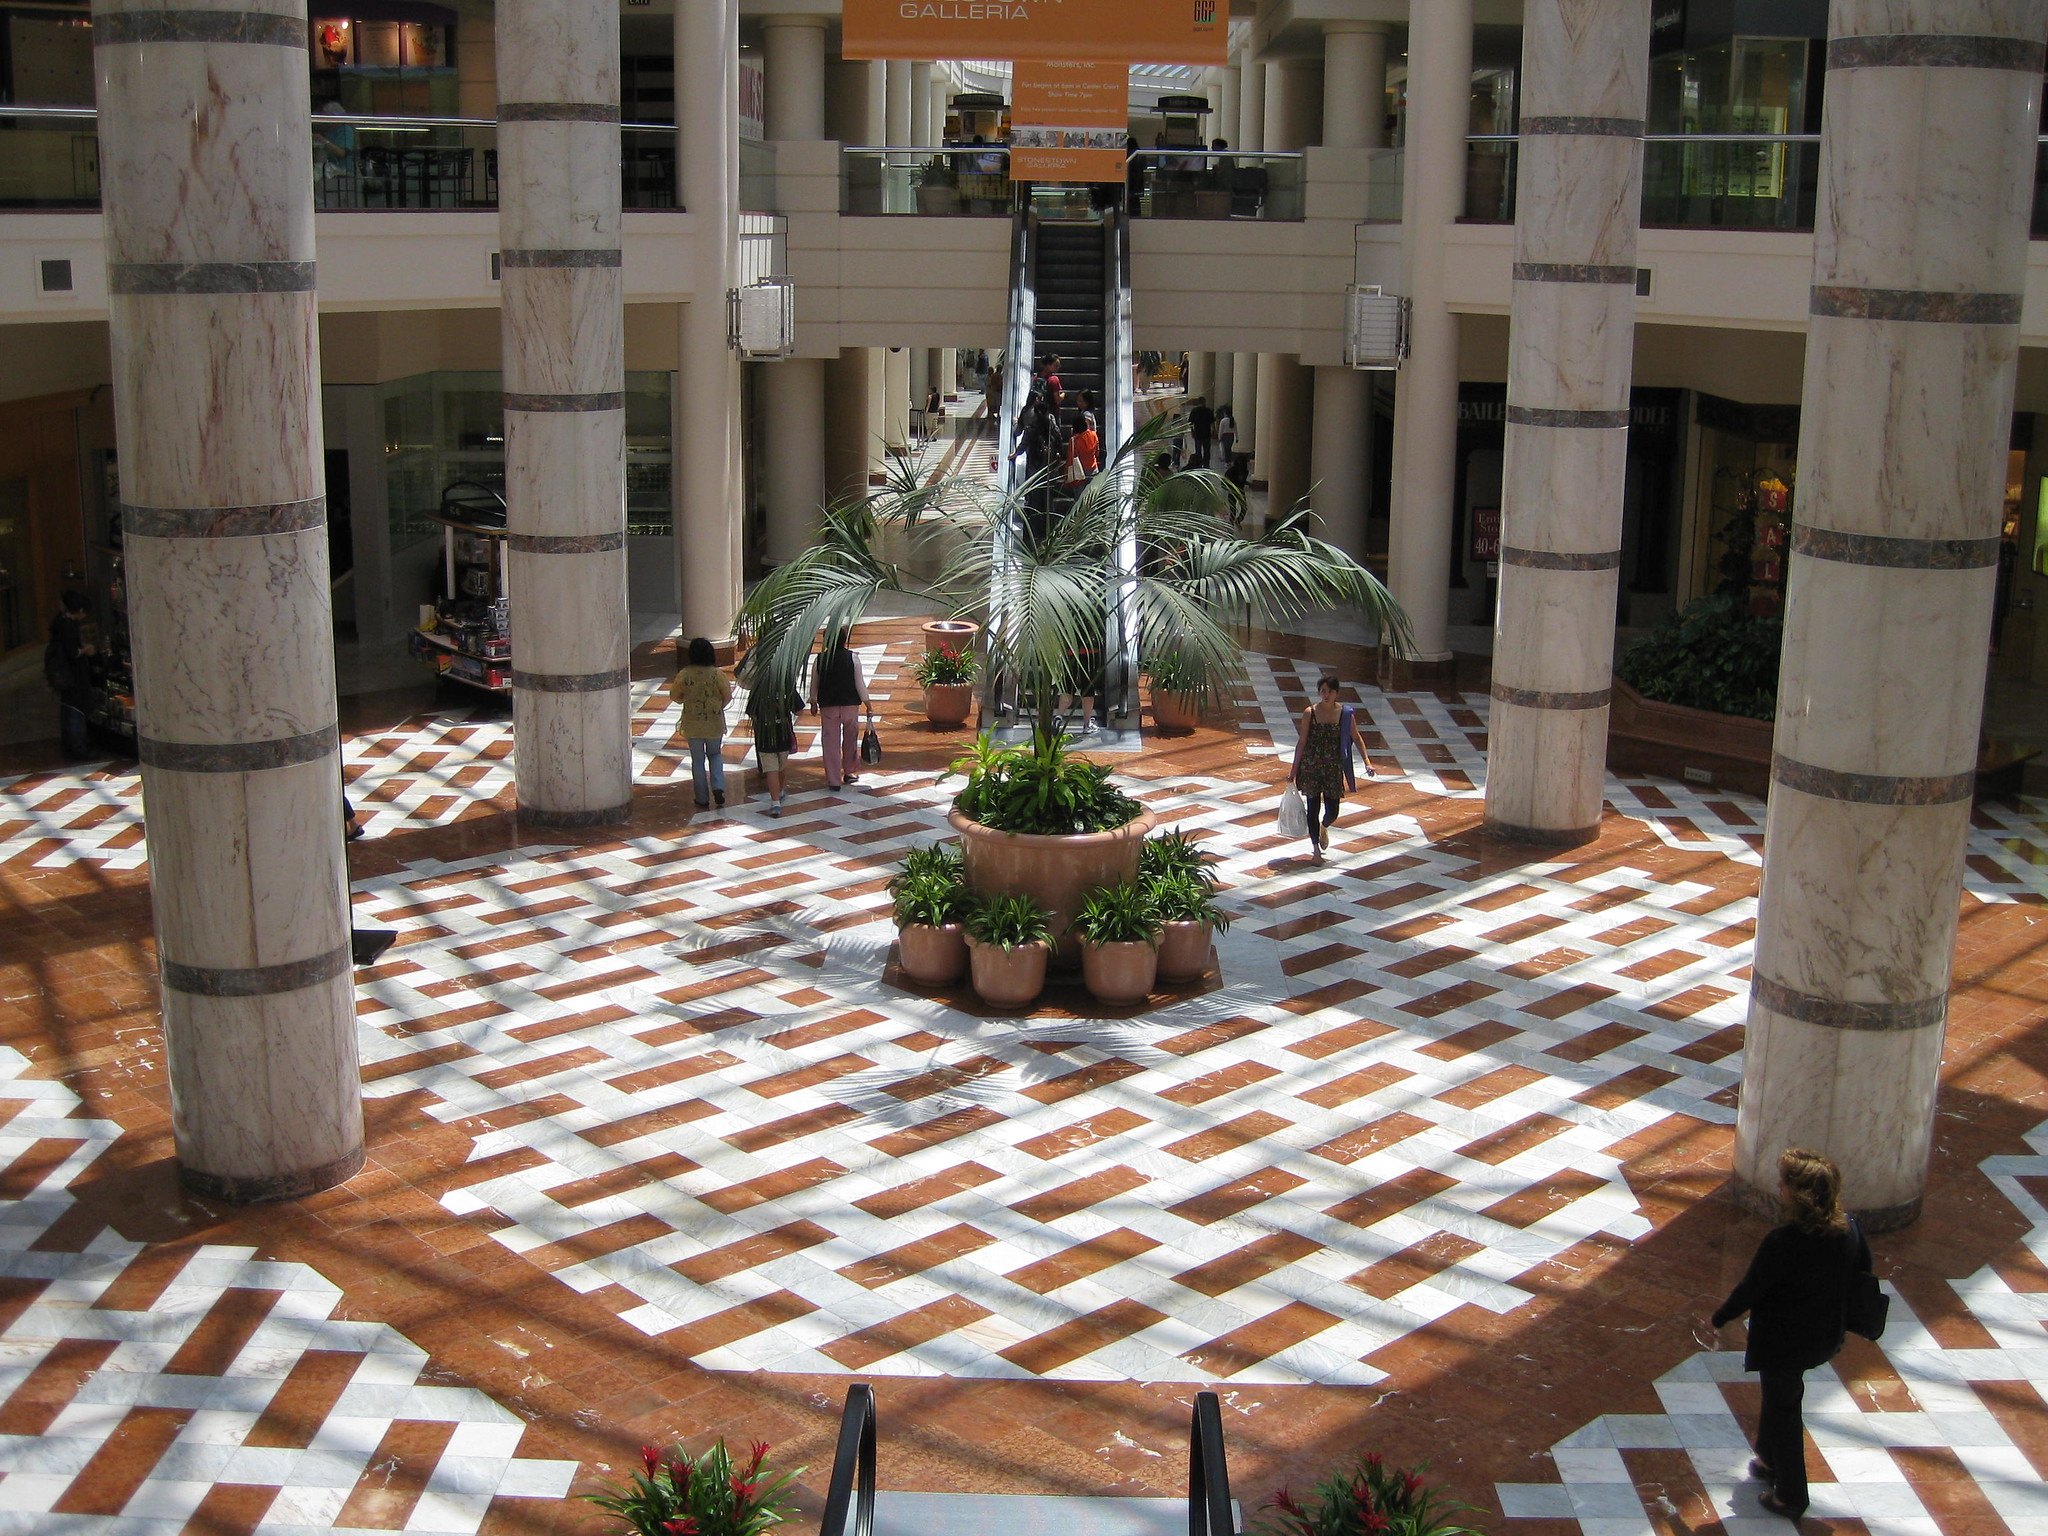 Inside Stonestown Galleria - photo by Michael Ocampo under CC BY 2.0